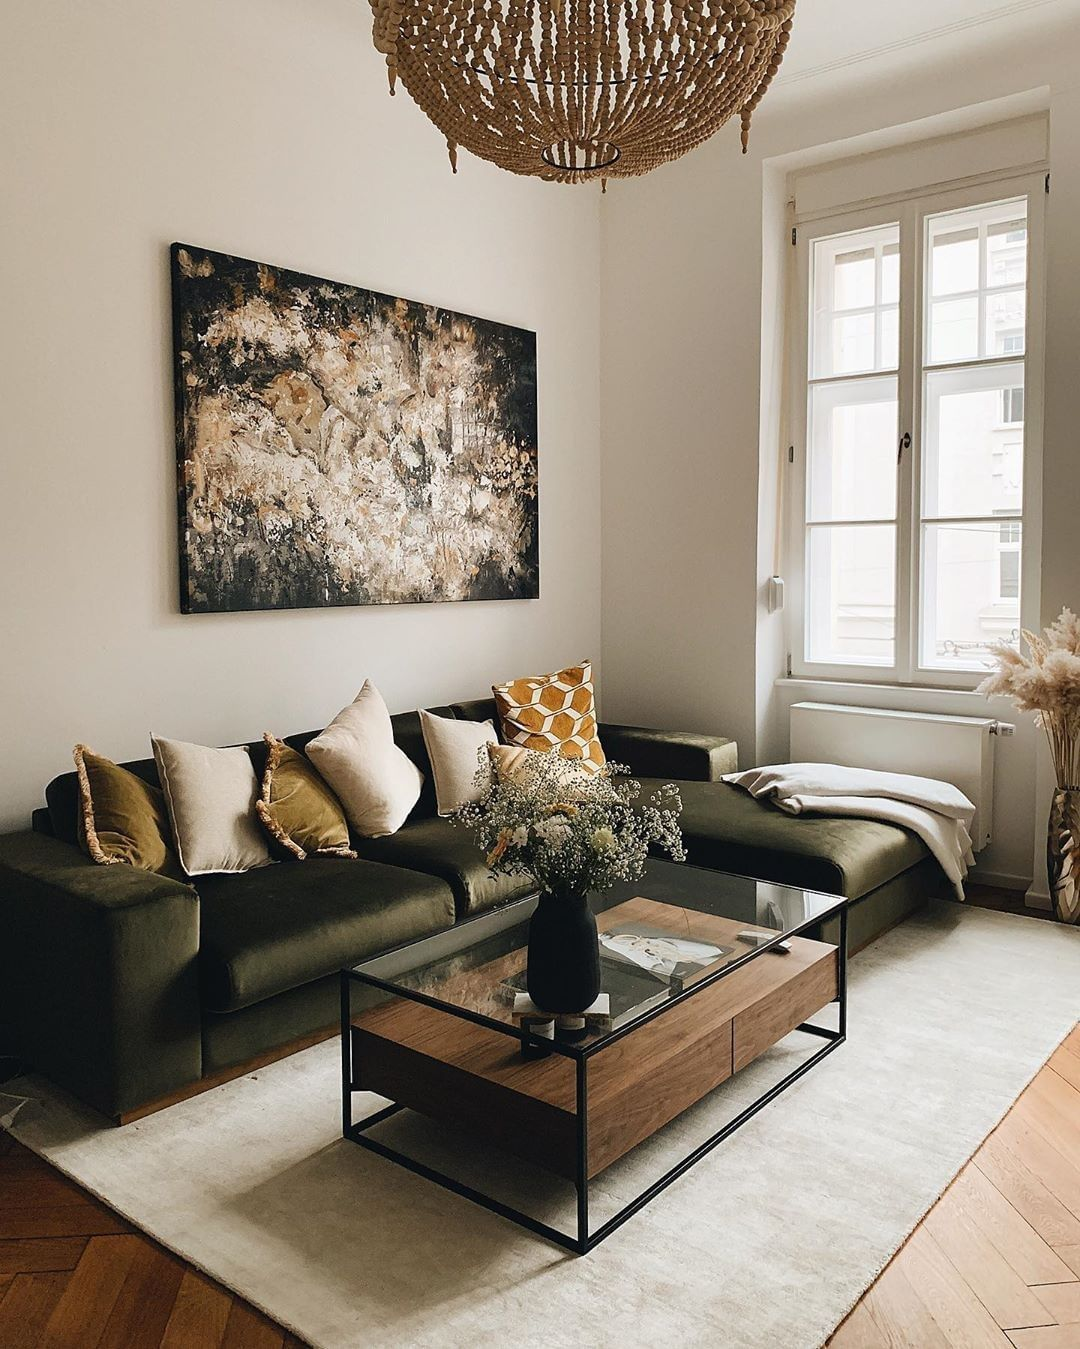 pinkathryn fitzsimmons on home decor  green living